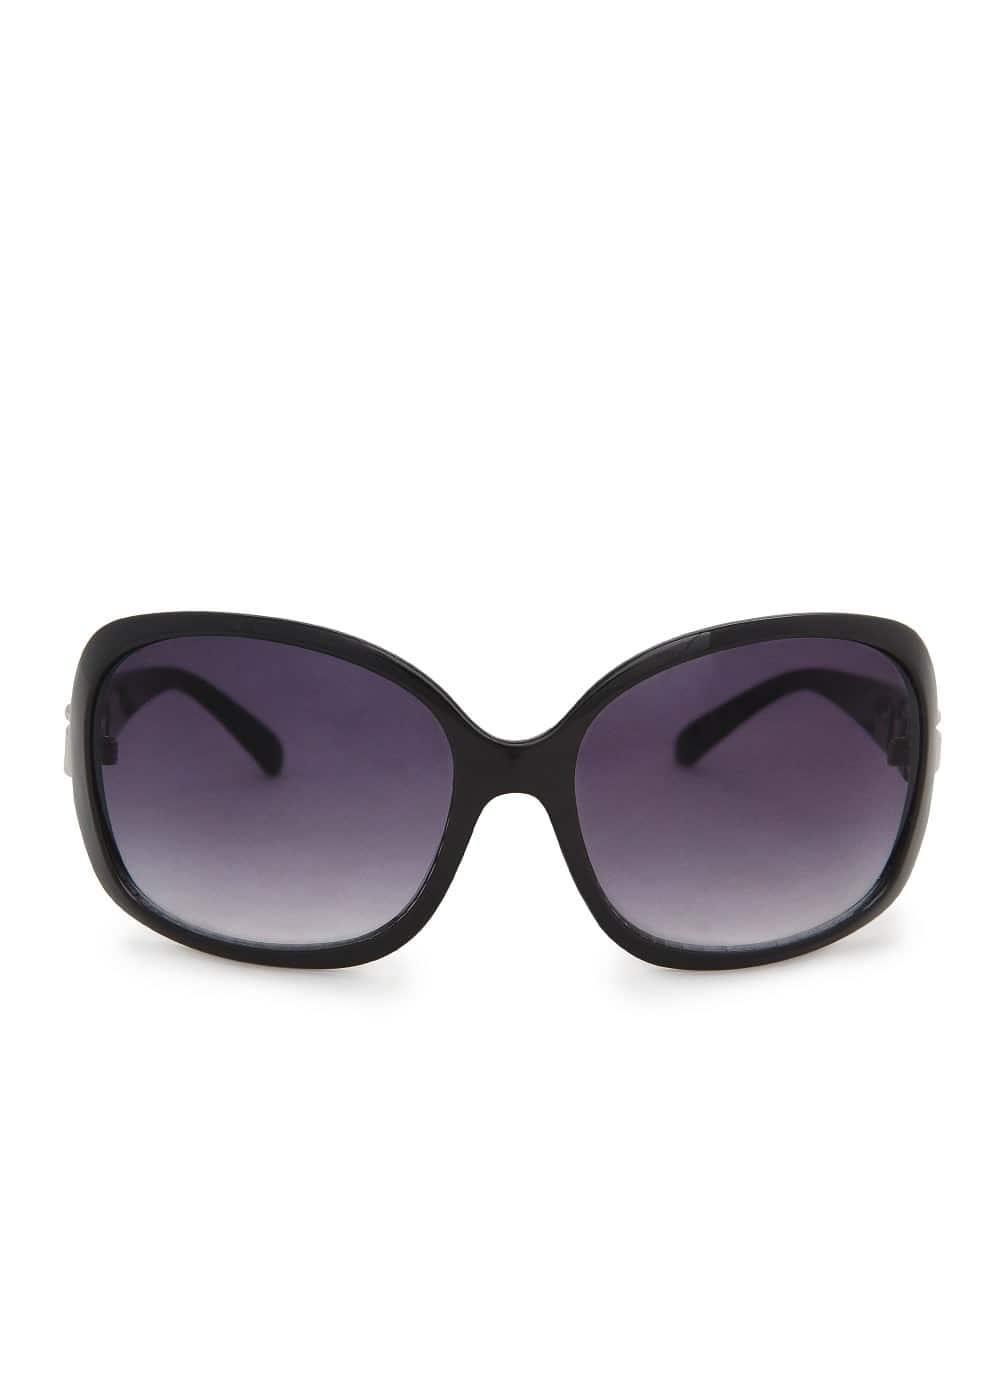 Chain appliqué sunglasses